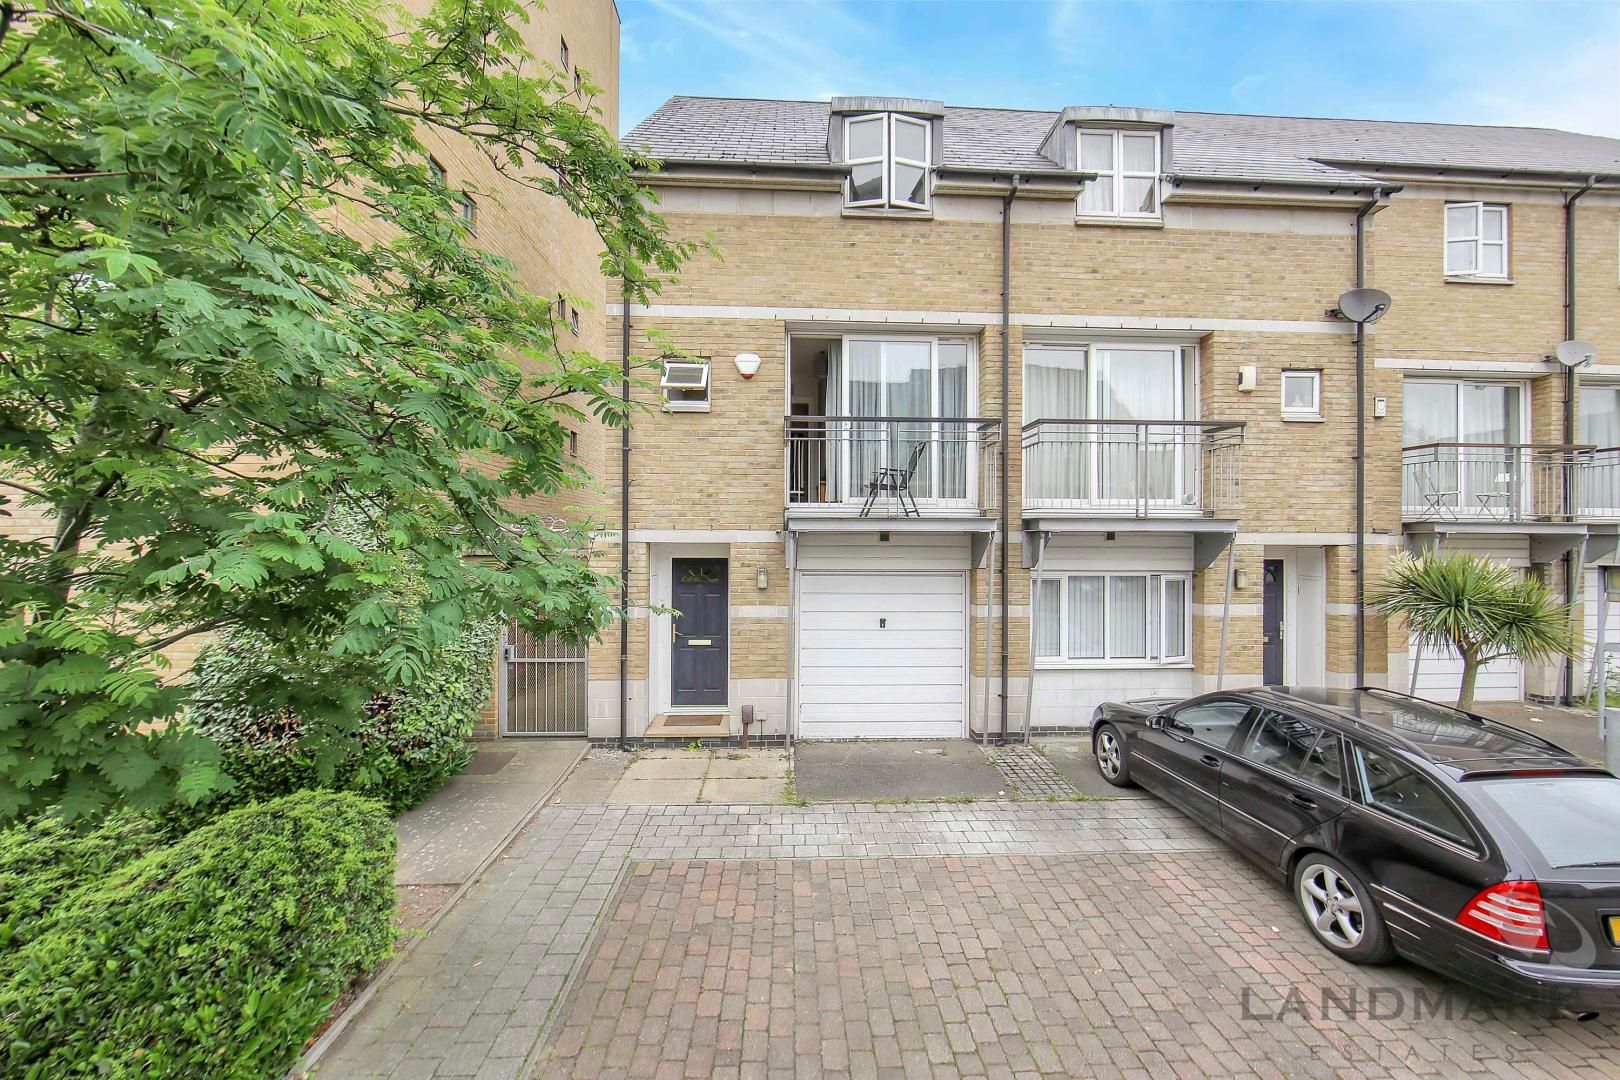 3 bed house for sale in Bering Square - Property Image 1